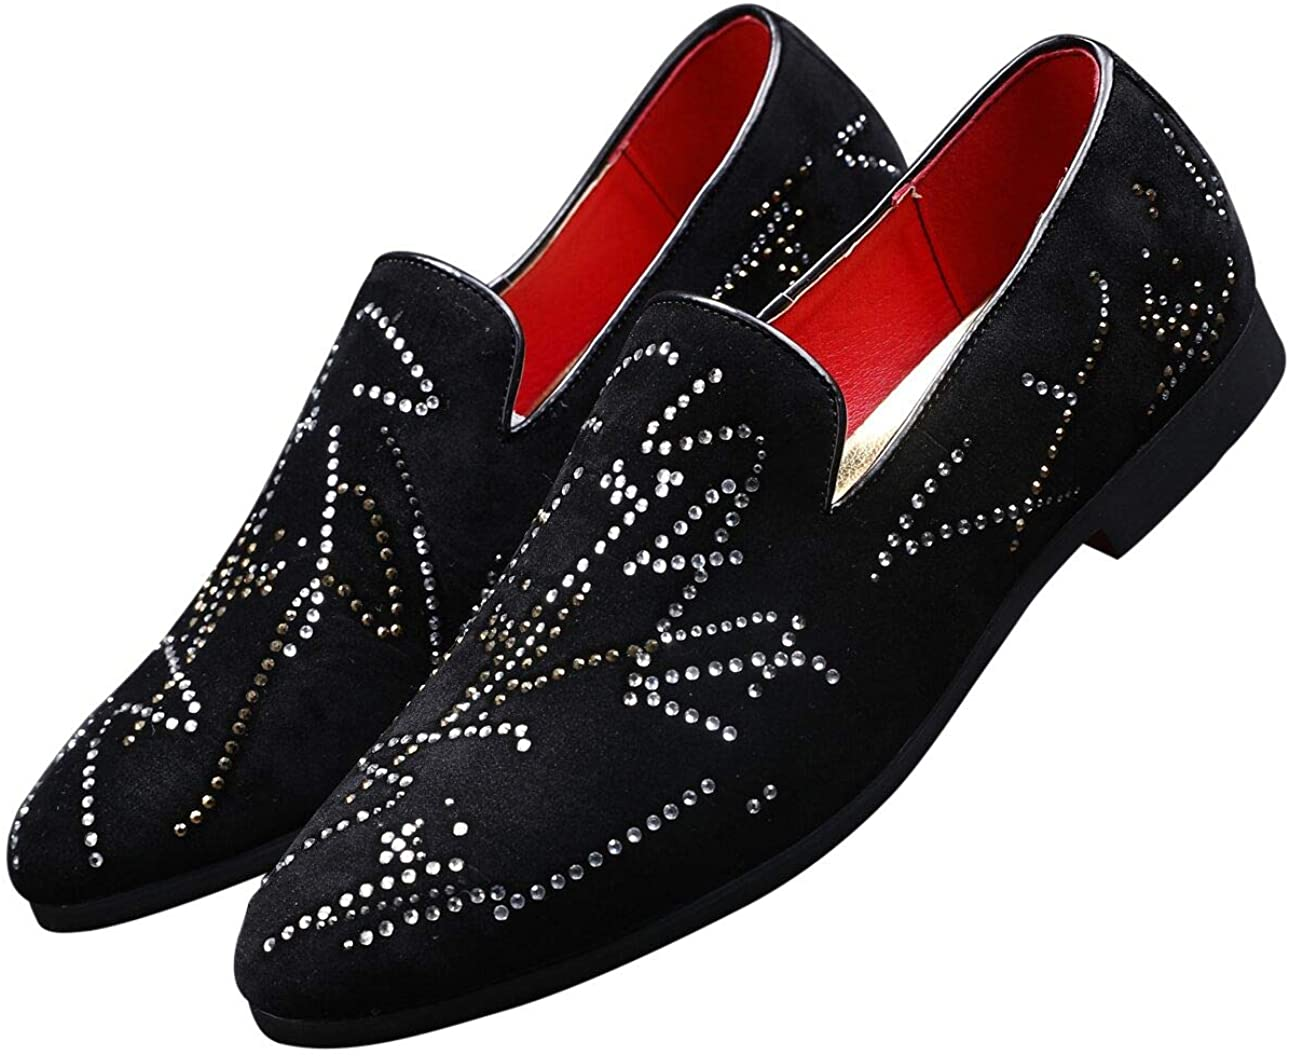 Santimon Mens Slip On Dress Shoes Smoking Slipper Handmade Rhinestones Crystal Suede Moccasins Casual Loafers